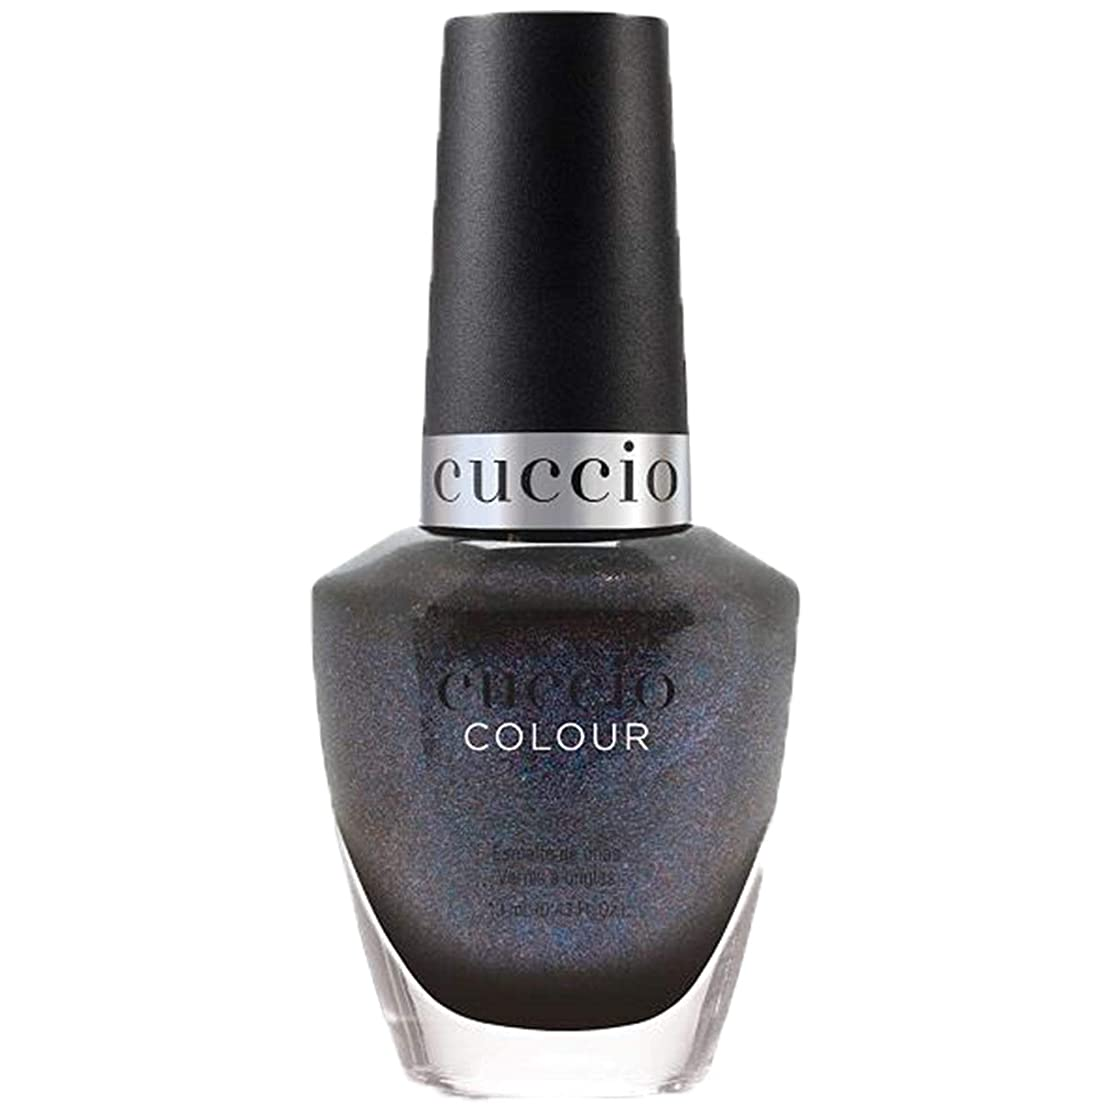 ジャンルヘクタール聖人Cuccio Colour Nail Lacquer - Tapestry Collection - Cover Me Up! - 13 mL / 0.43 oz